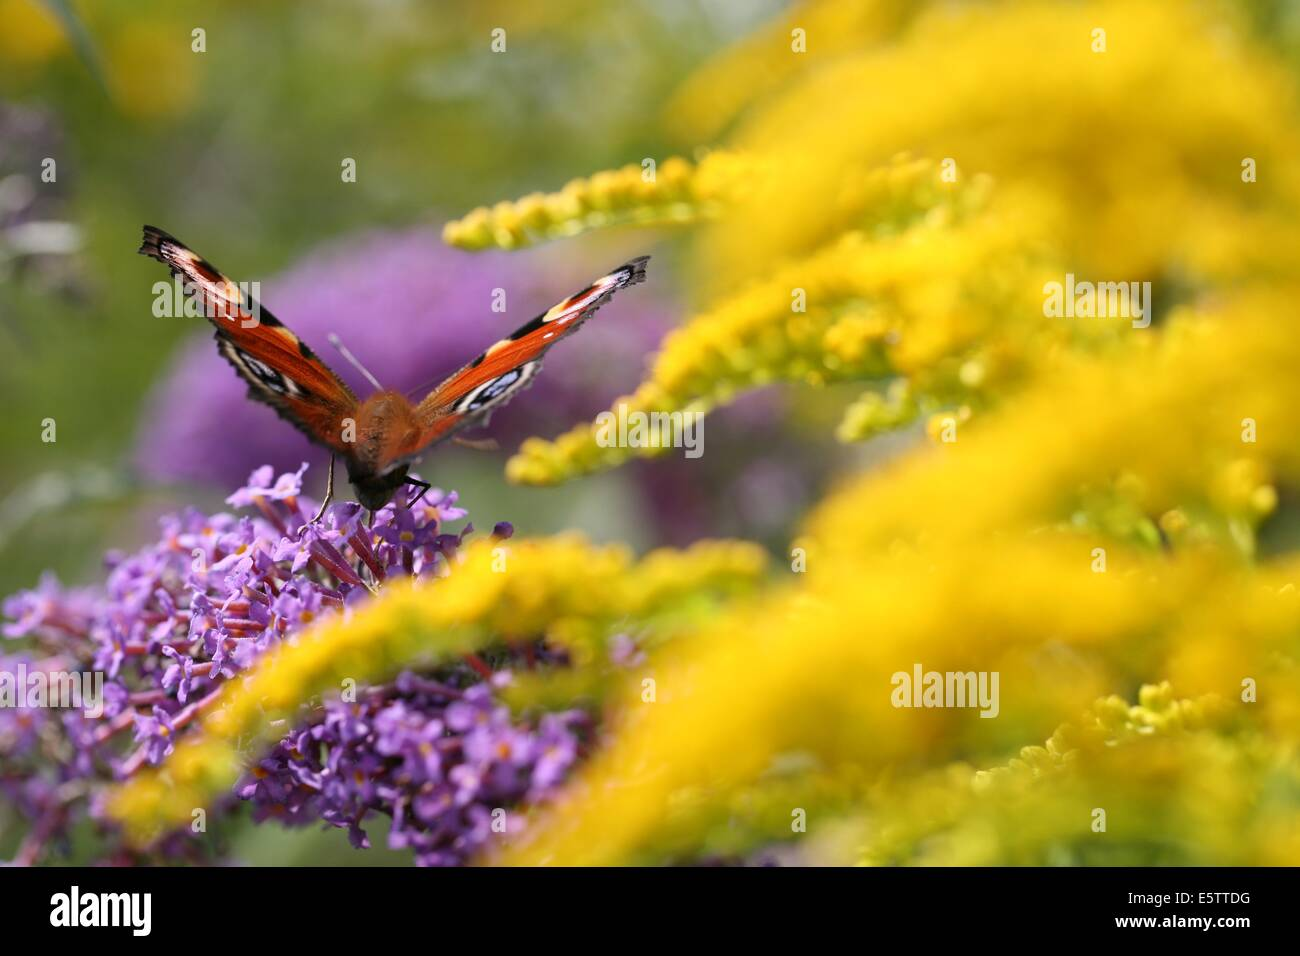 peacock butterfly feeding on nectar - Stock Image